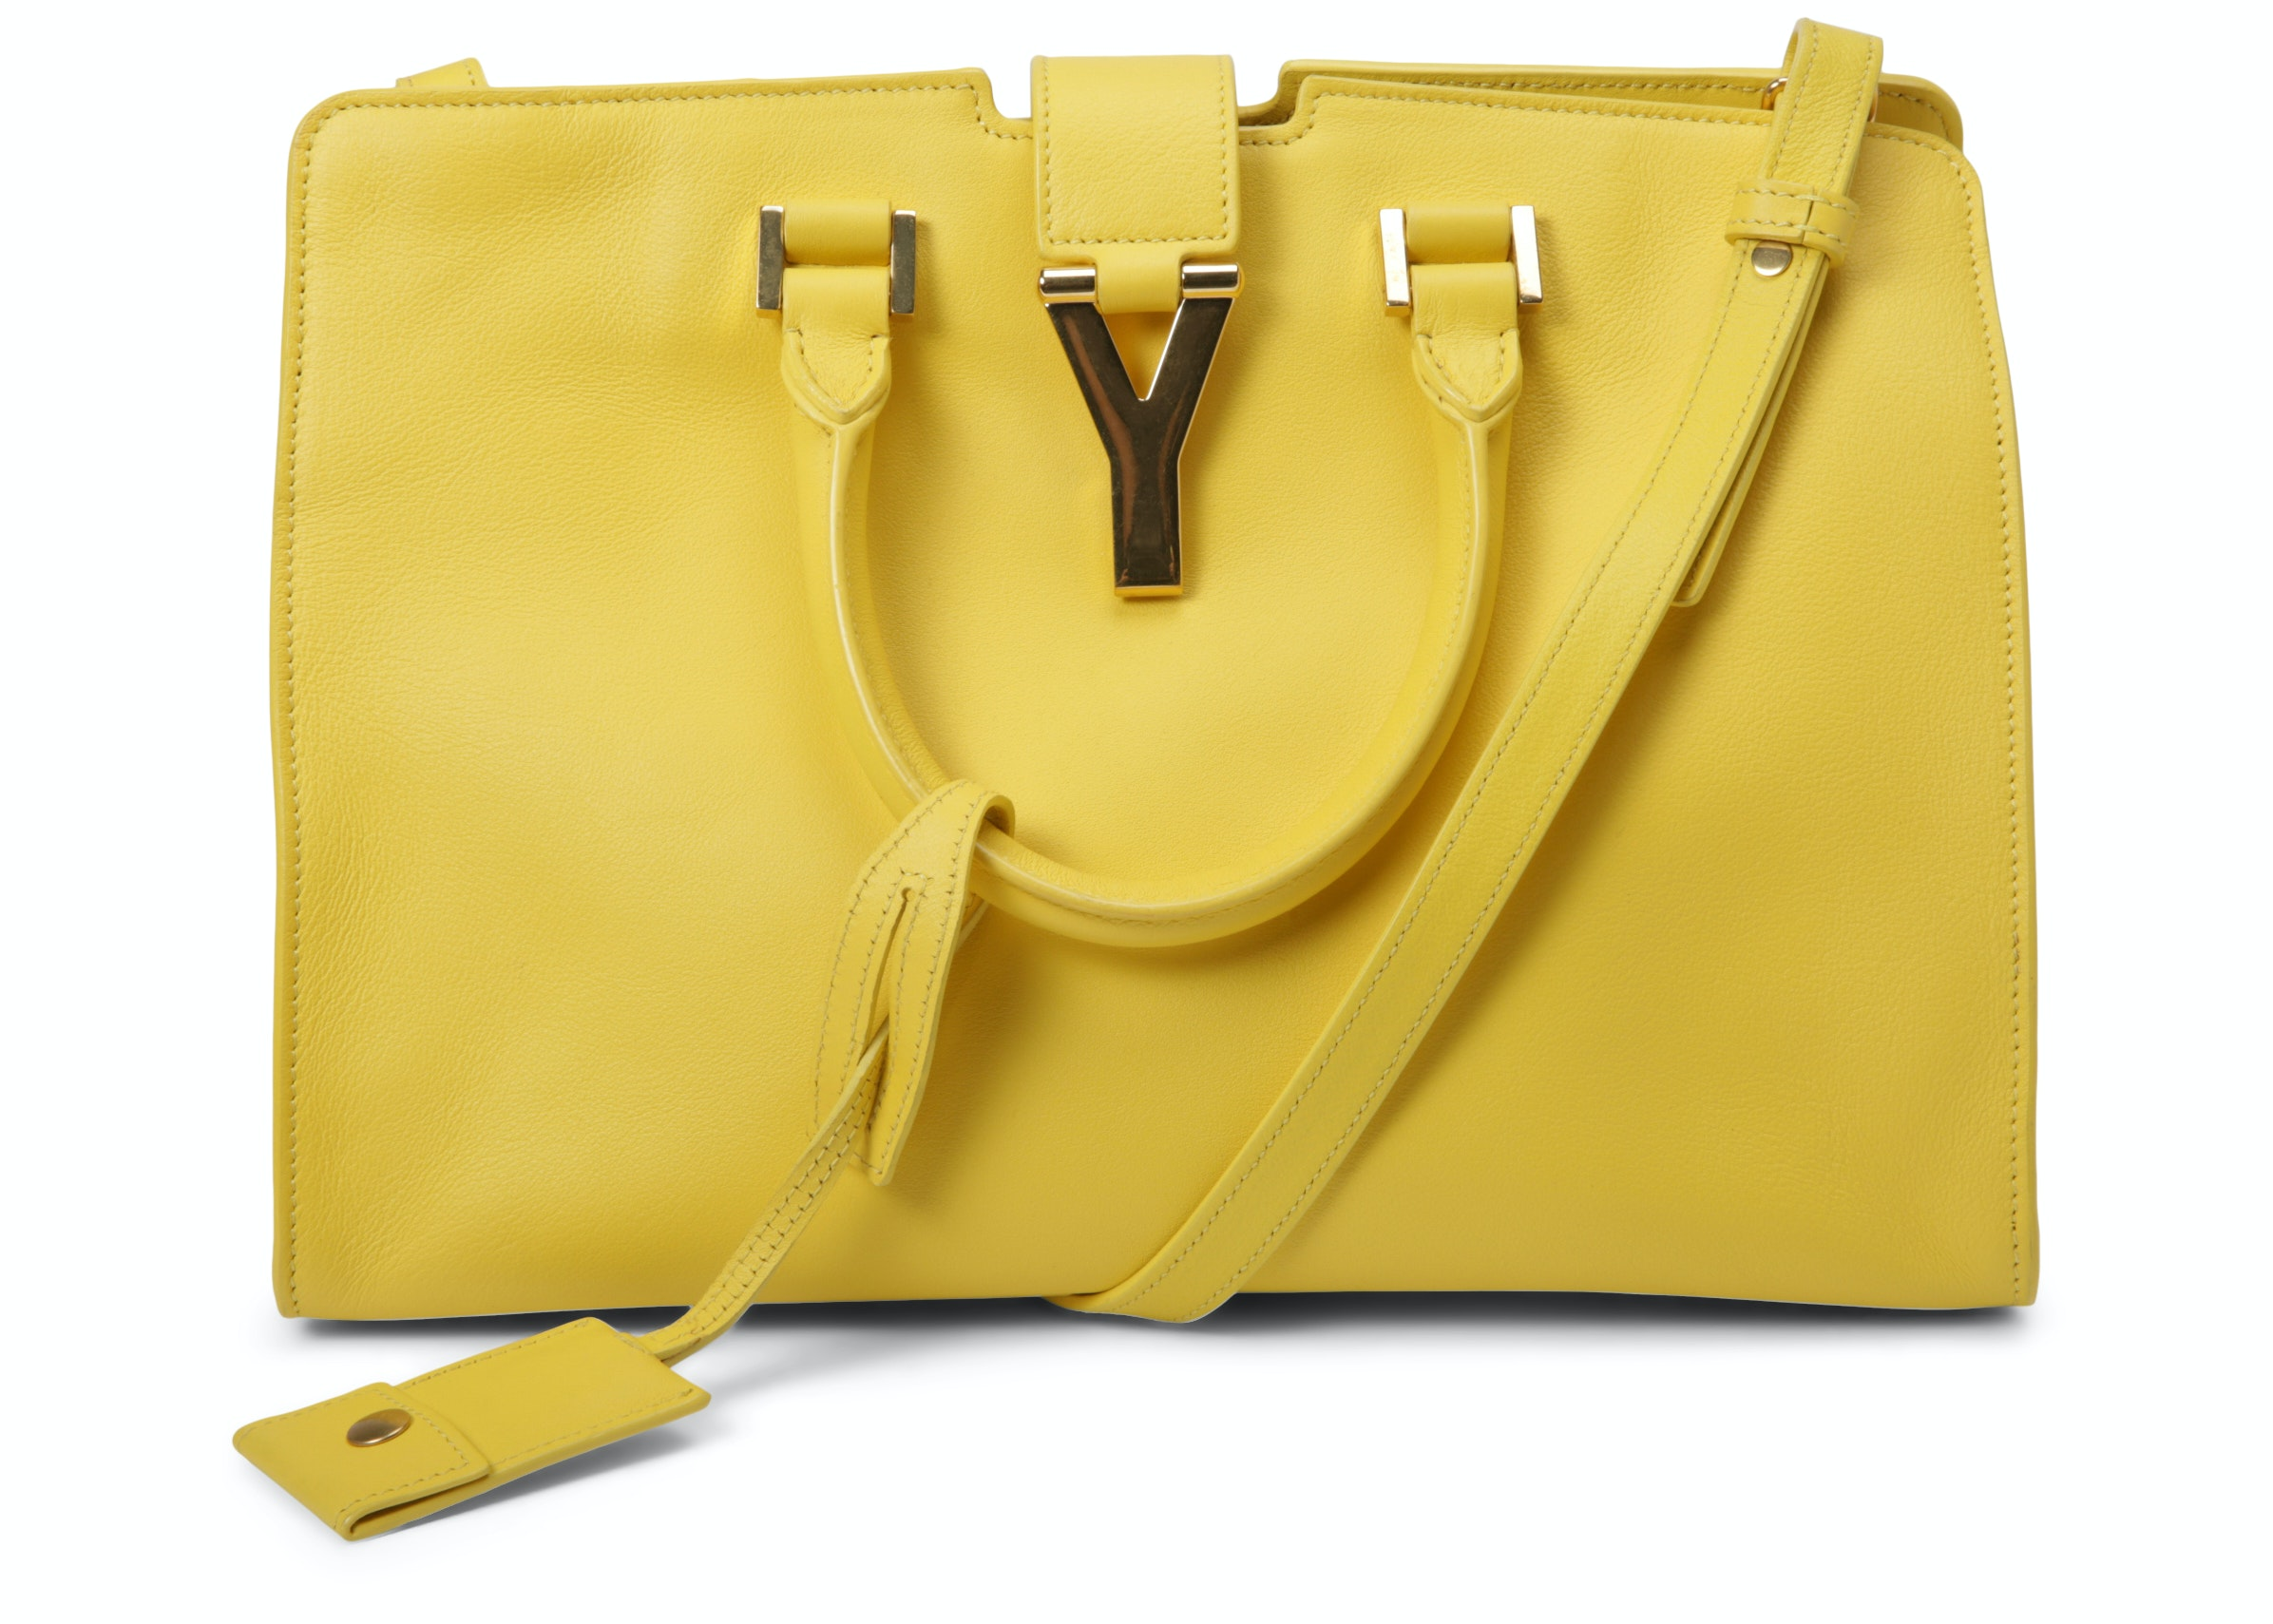 Saint Laurent Classic Cabas Y Top Handle Small Yellow